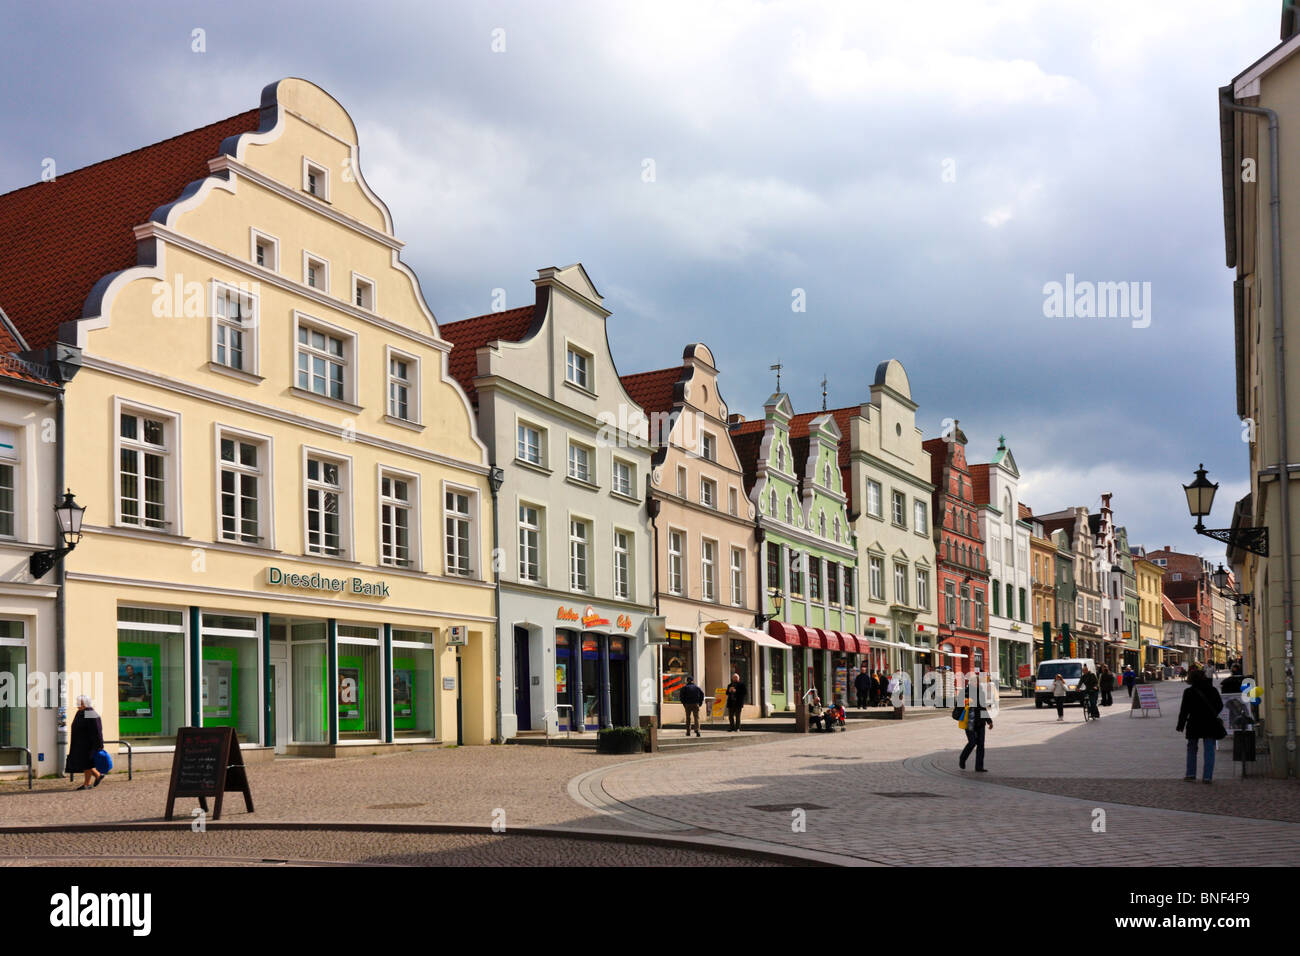 Renovated historical shop houses around the market square in Wismar, Germany - Stock Image